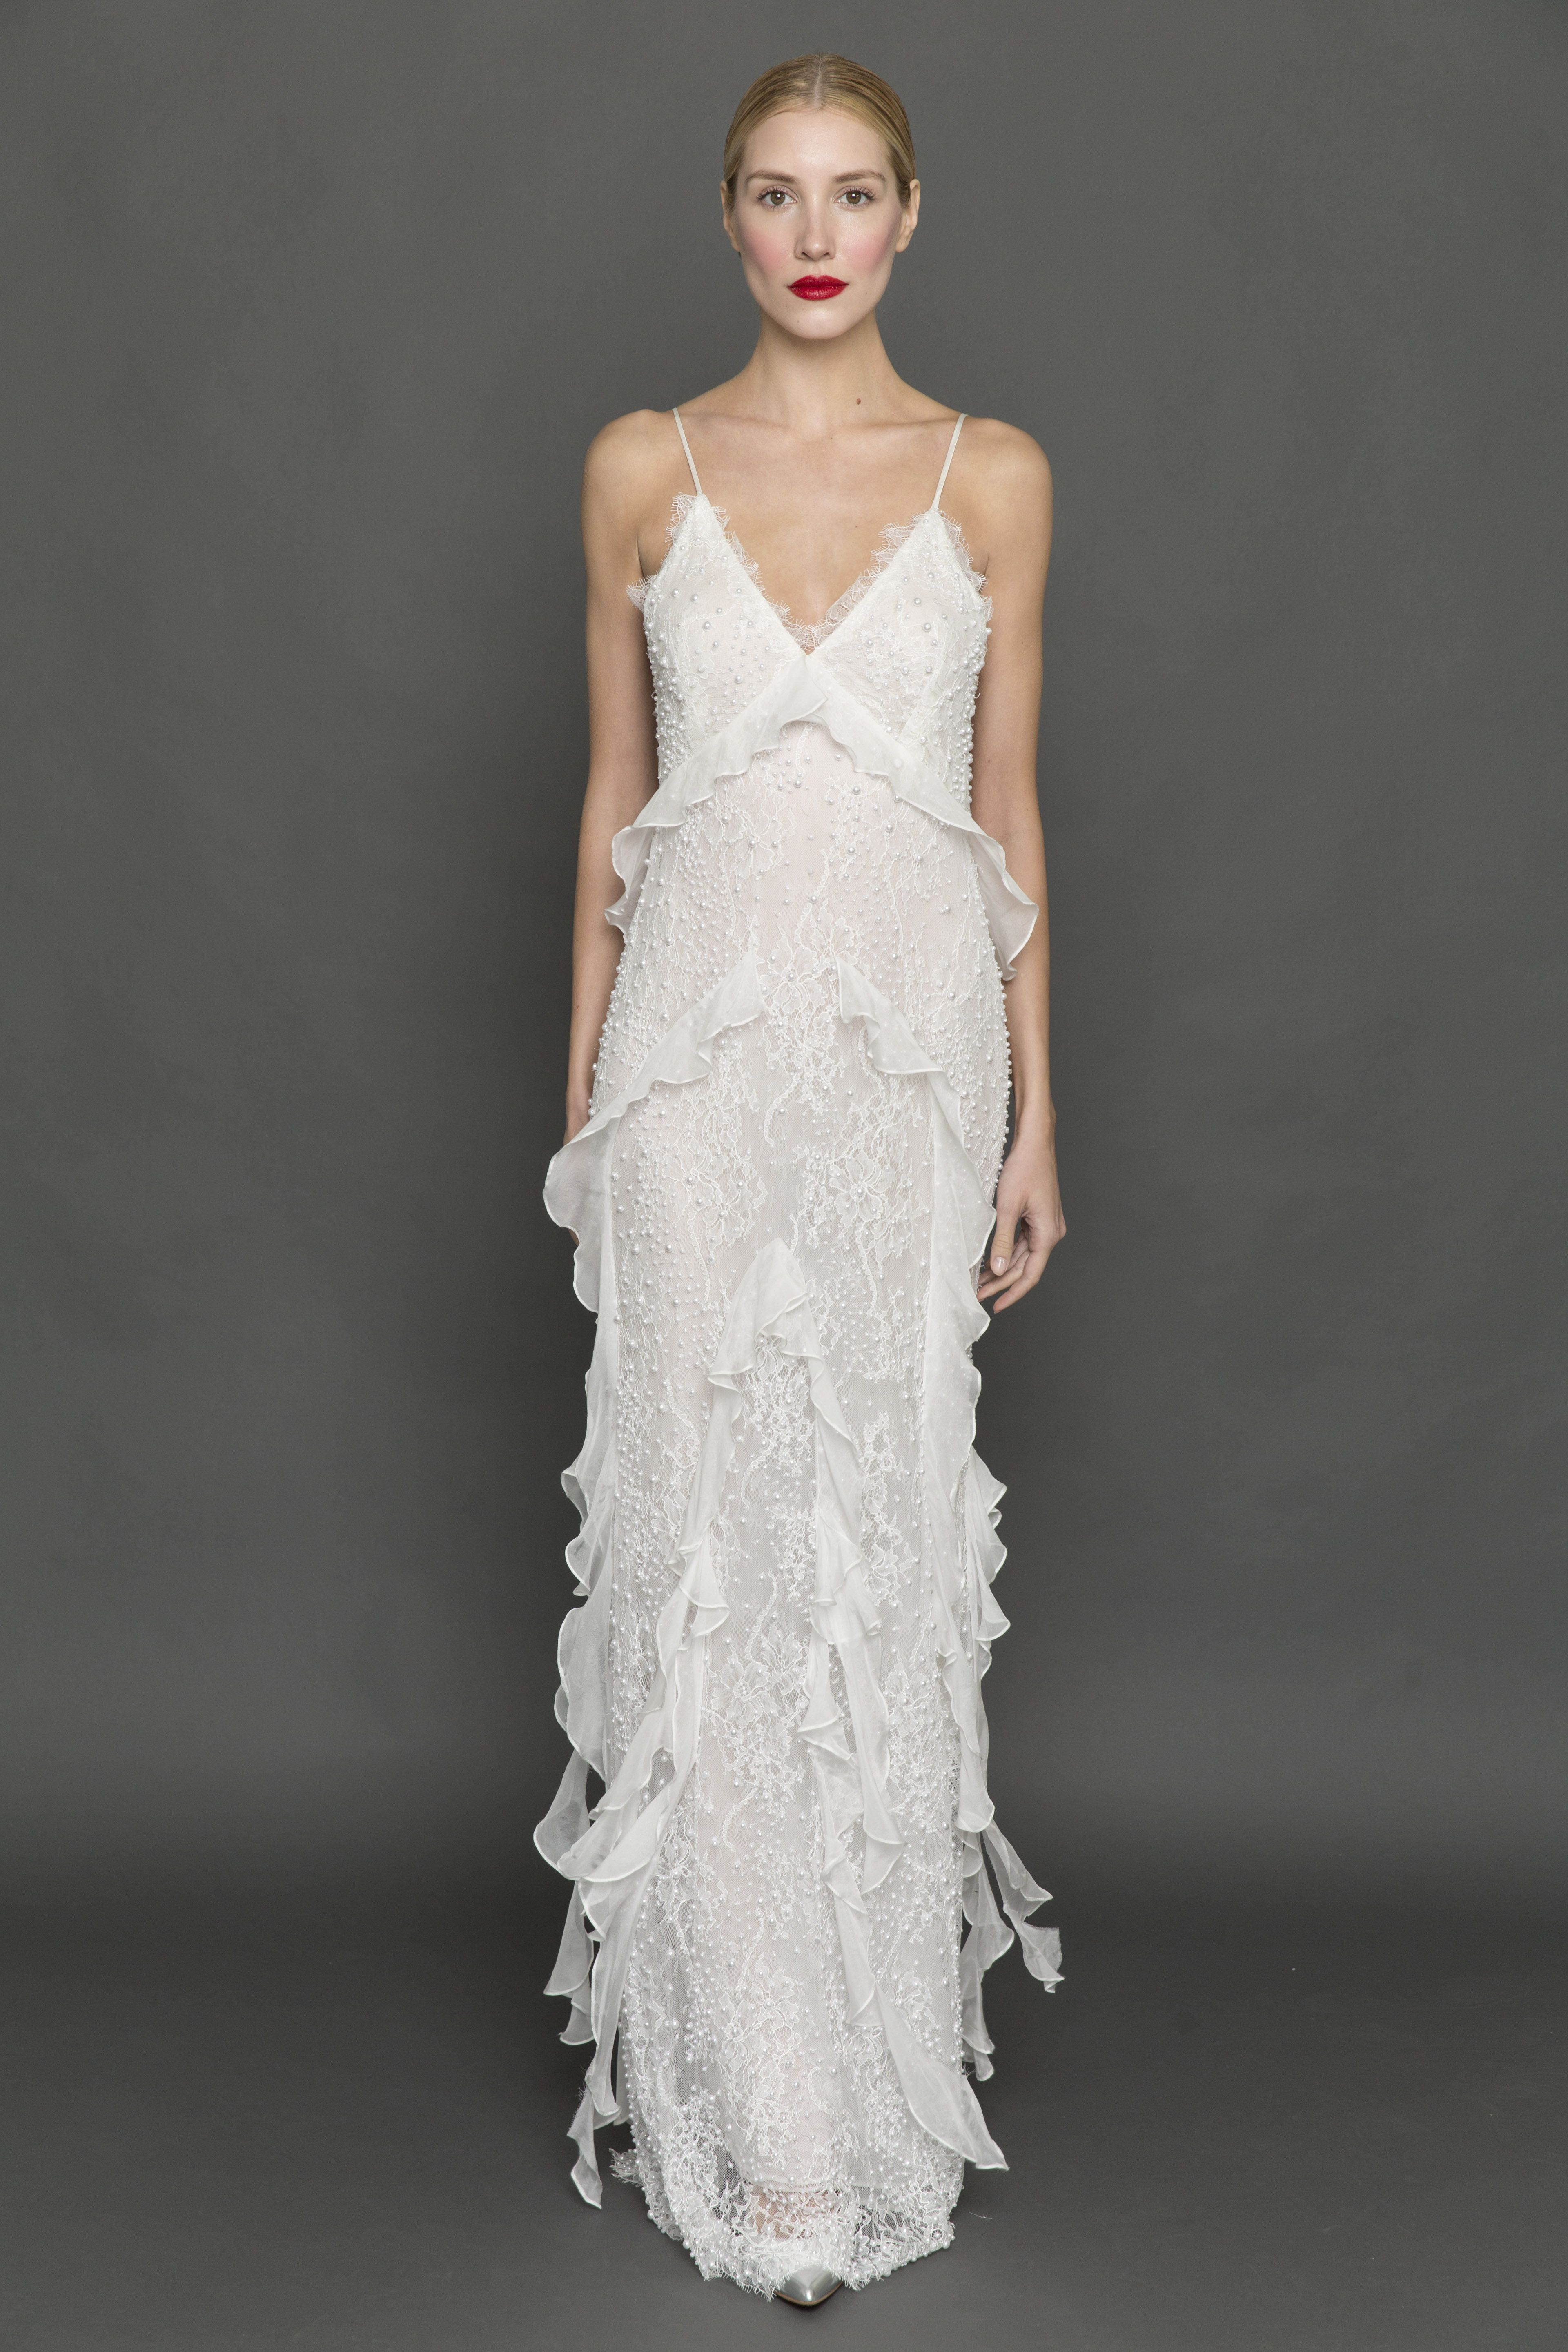 Dress for fall wedding   of the Prettiest Dresses From Fall Bridal Fashion Week  Romantic